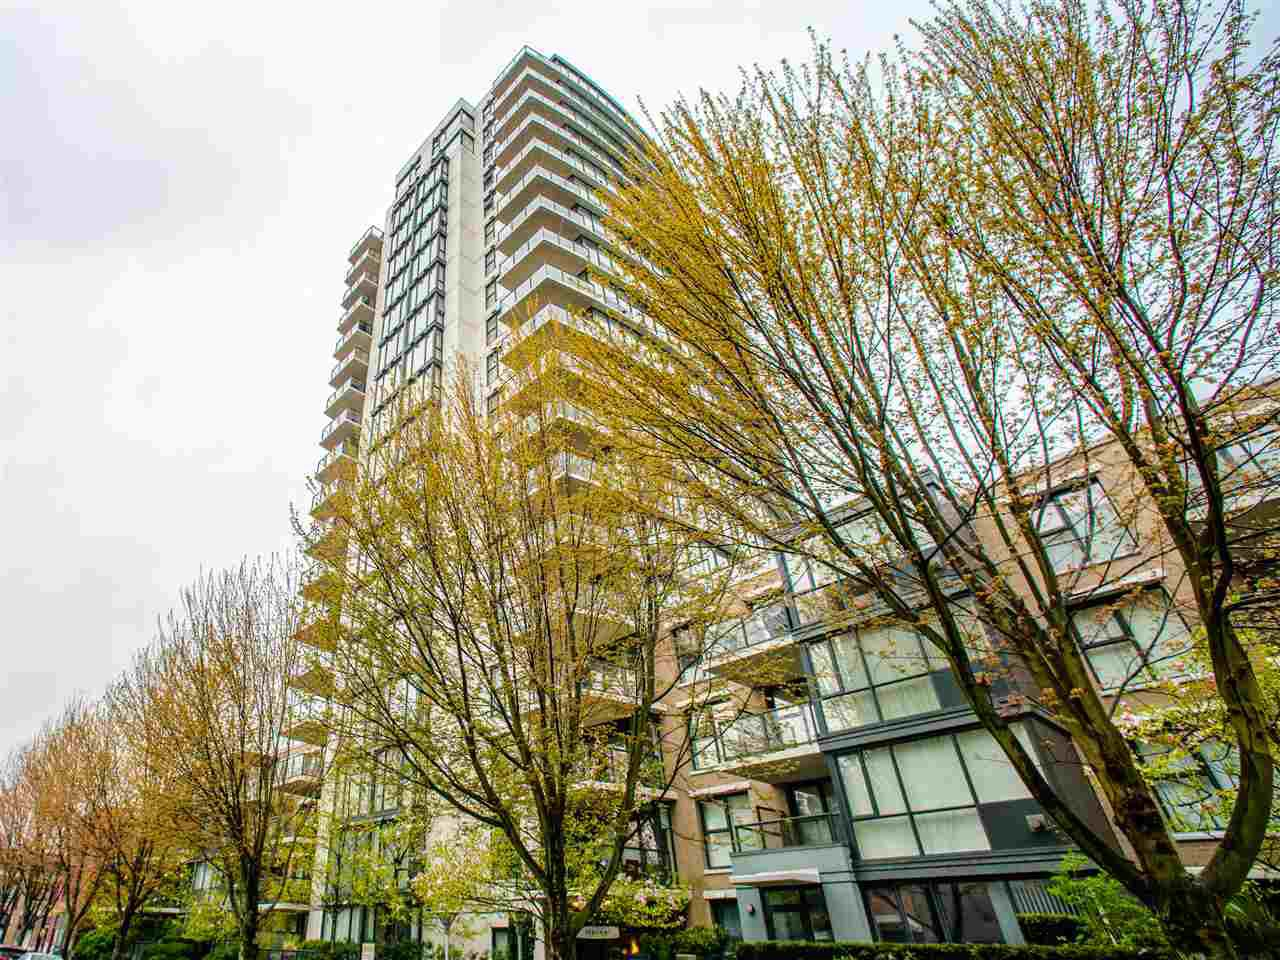 Main Photo: 311 1483 W 7TH AVENUE in Vancouver: Fairview VW Condo for sale (Vancouver West)  : MLS®# R2162656